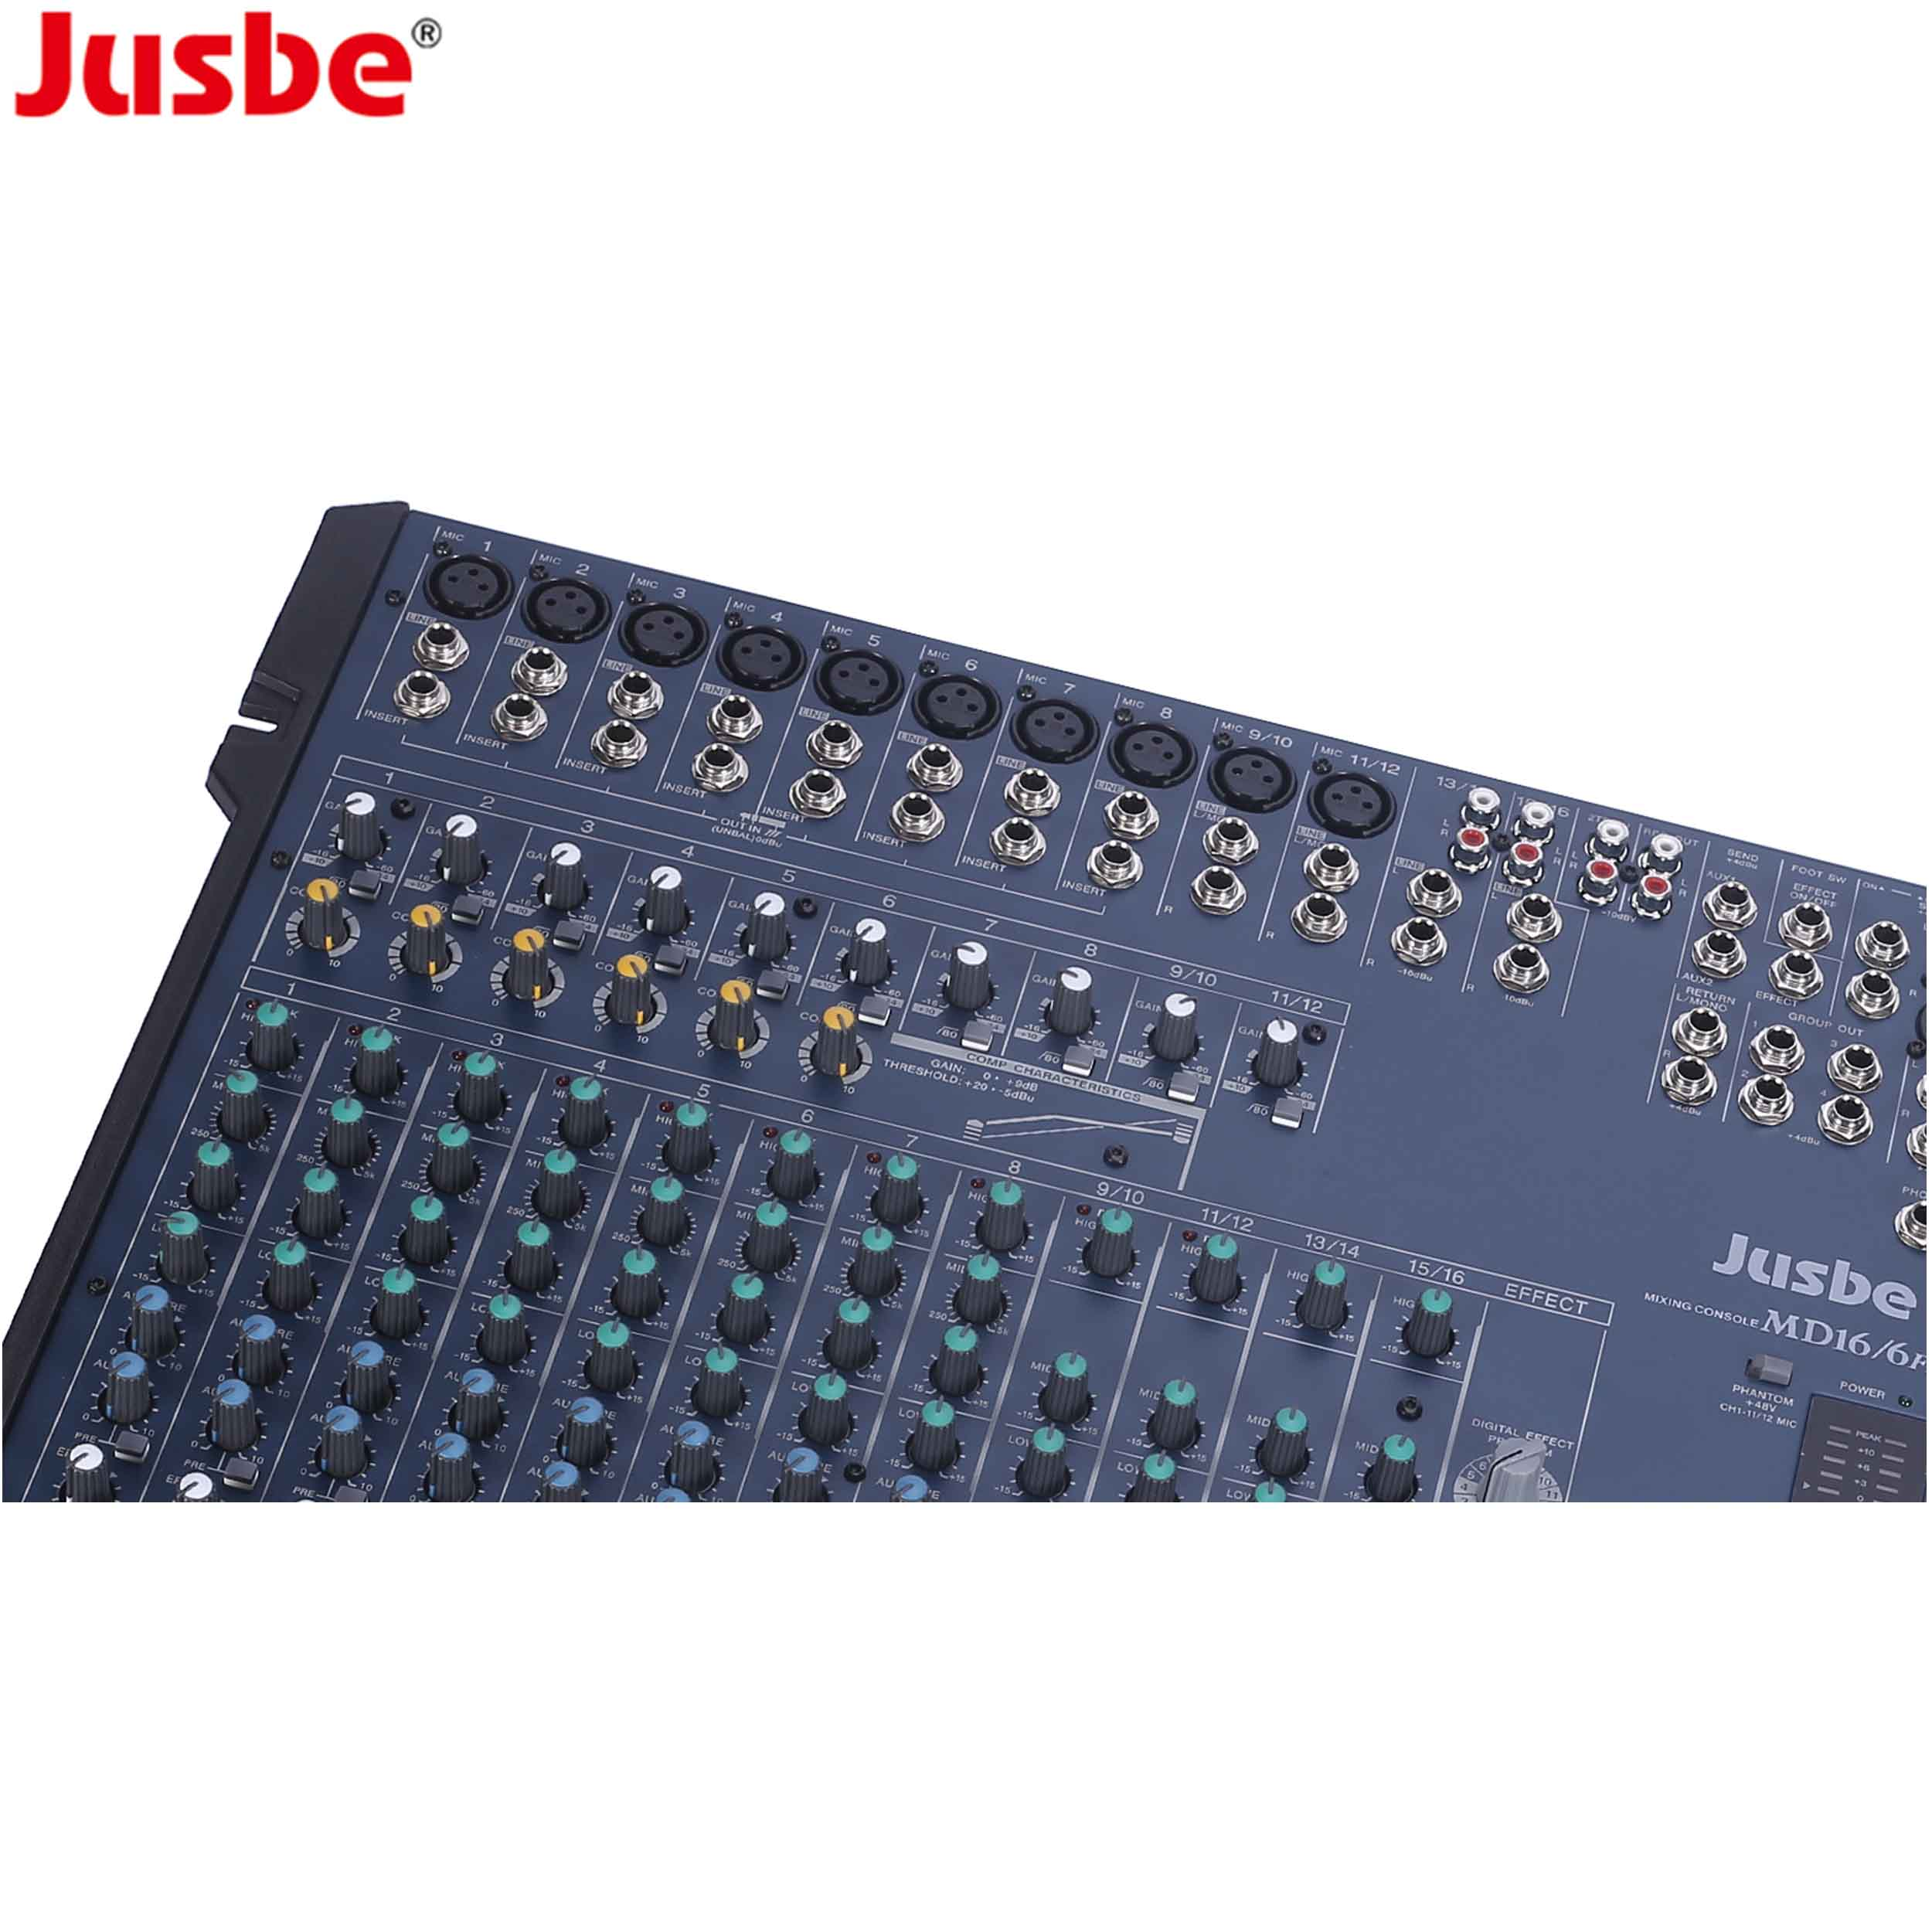 Free Mp3 Download 16 24 32 Optical Zones Home Theater System Console Music  Audio Mixer - Buy Audio Mixer,Music Mixer Console,Home Theatre System